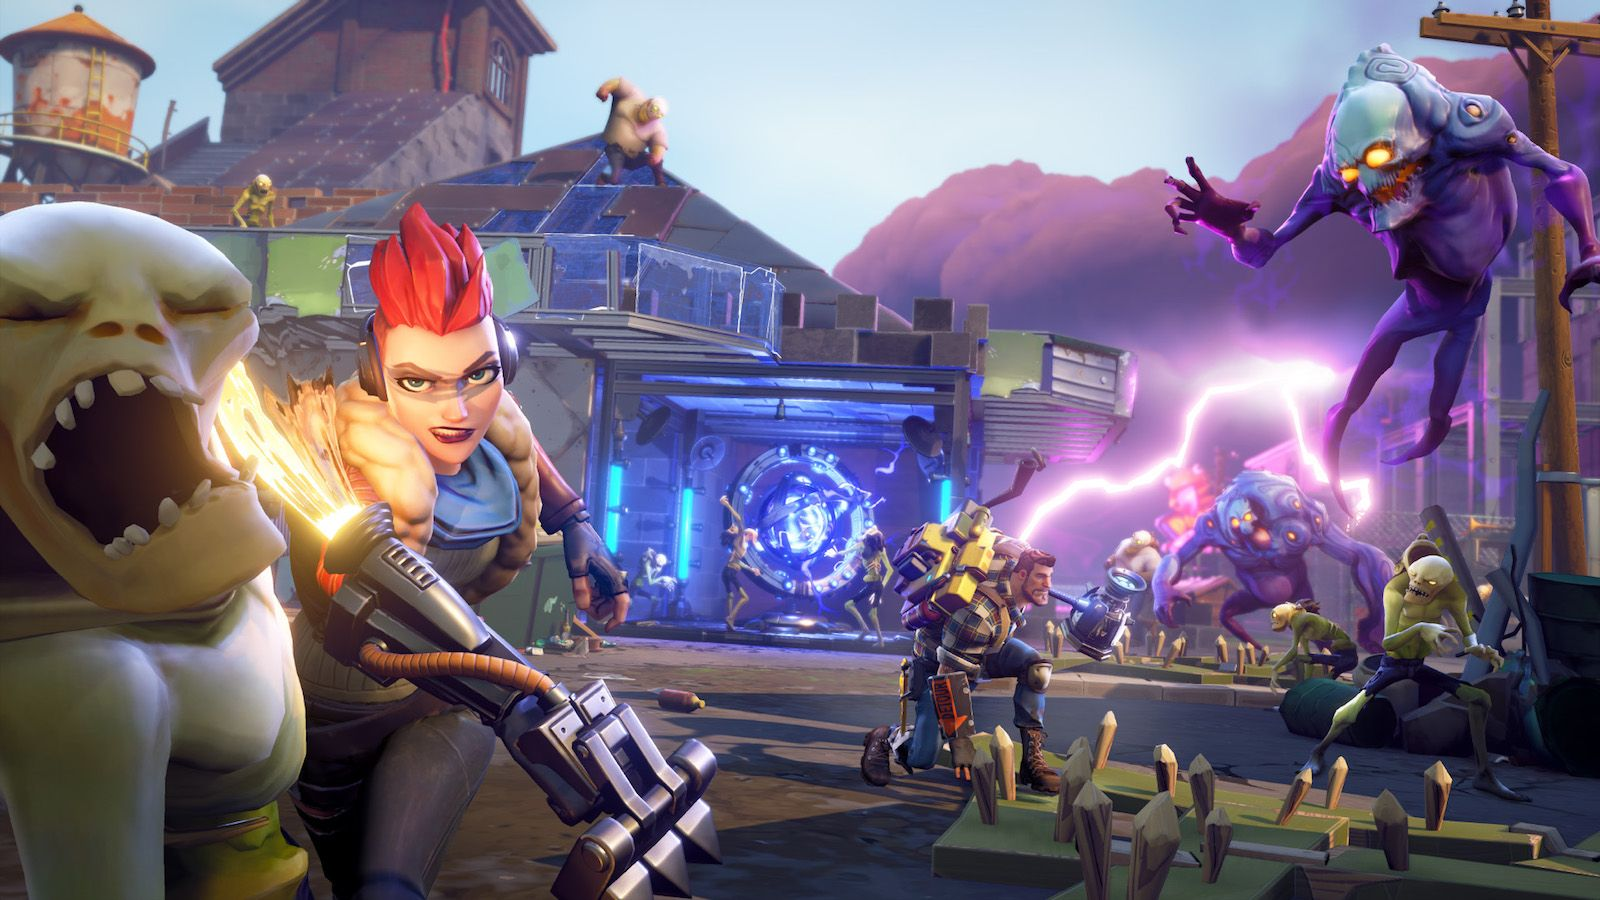 In 'Fortnite,' building is just as important as fighting